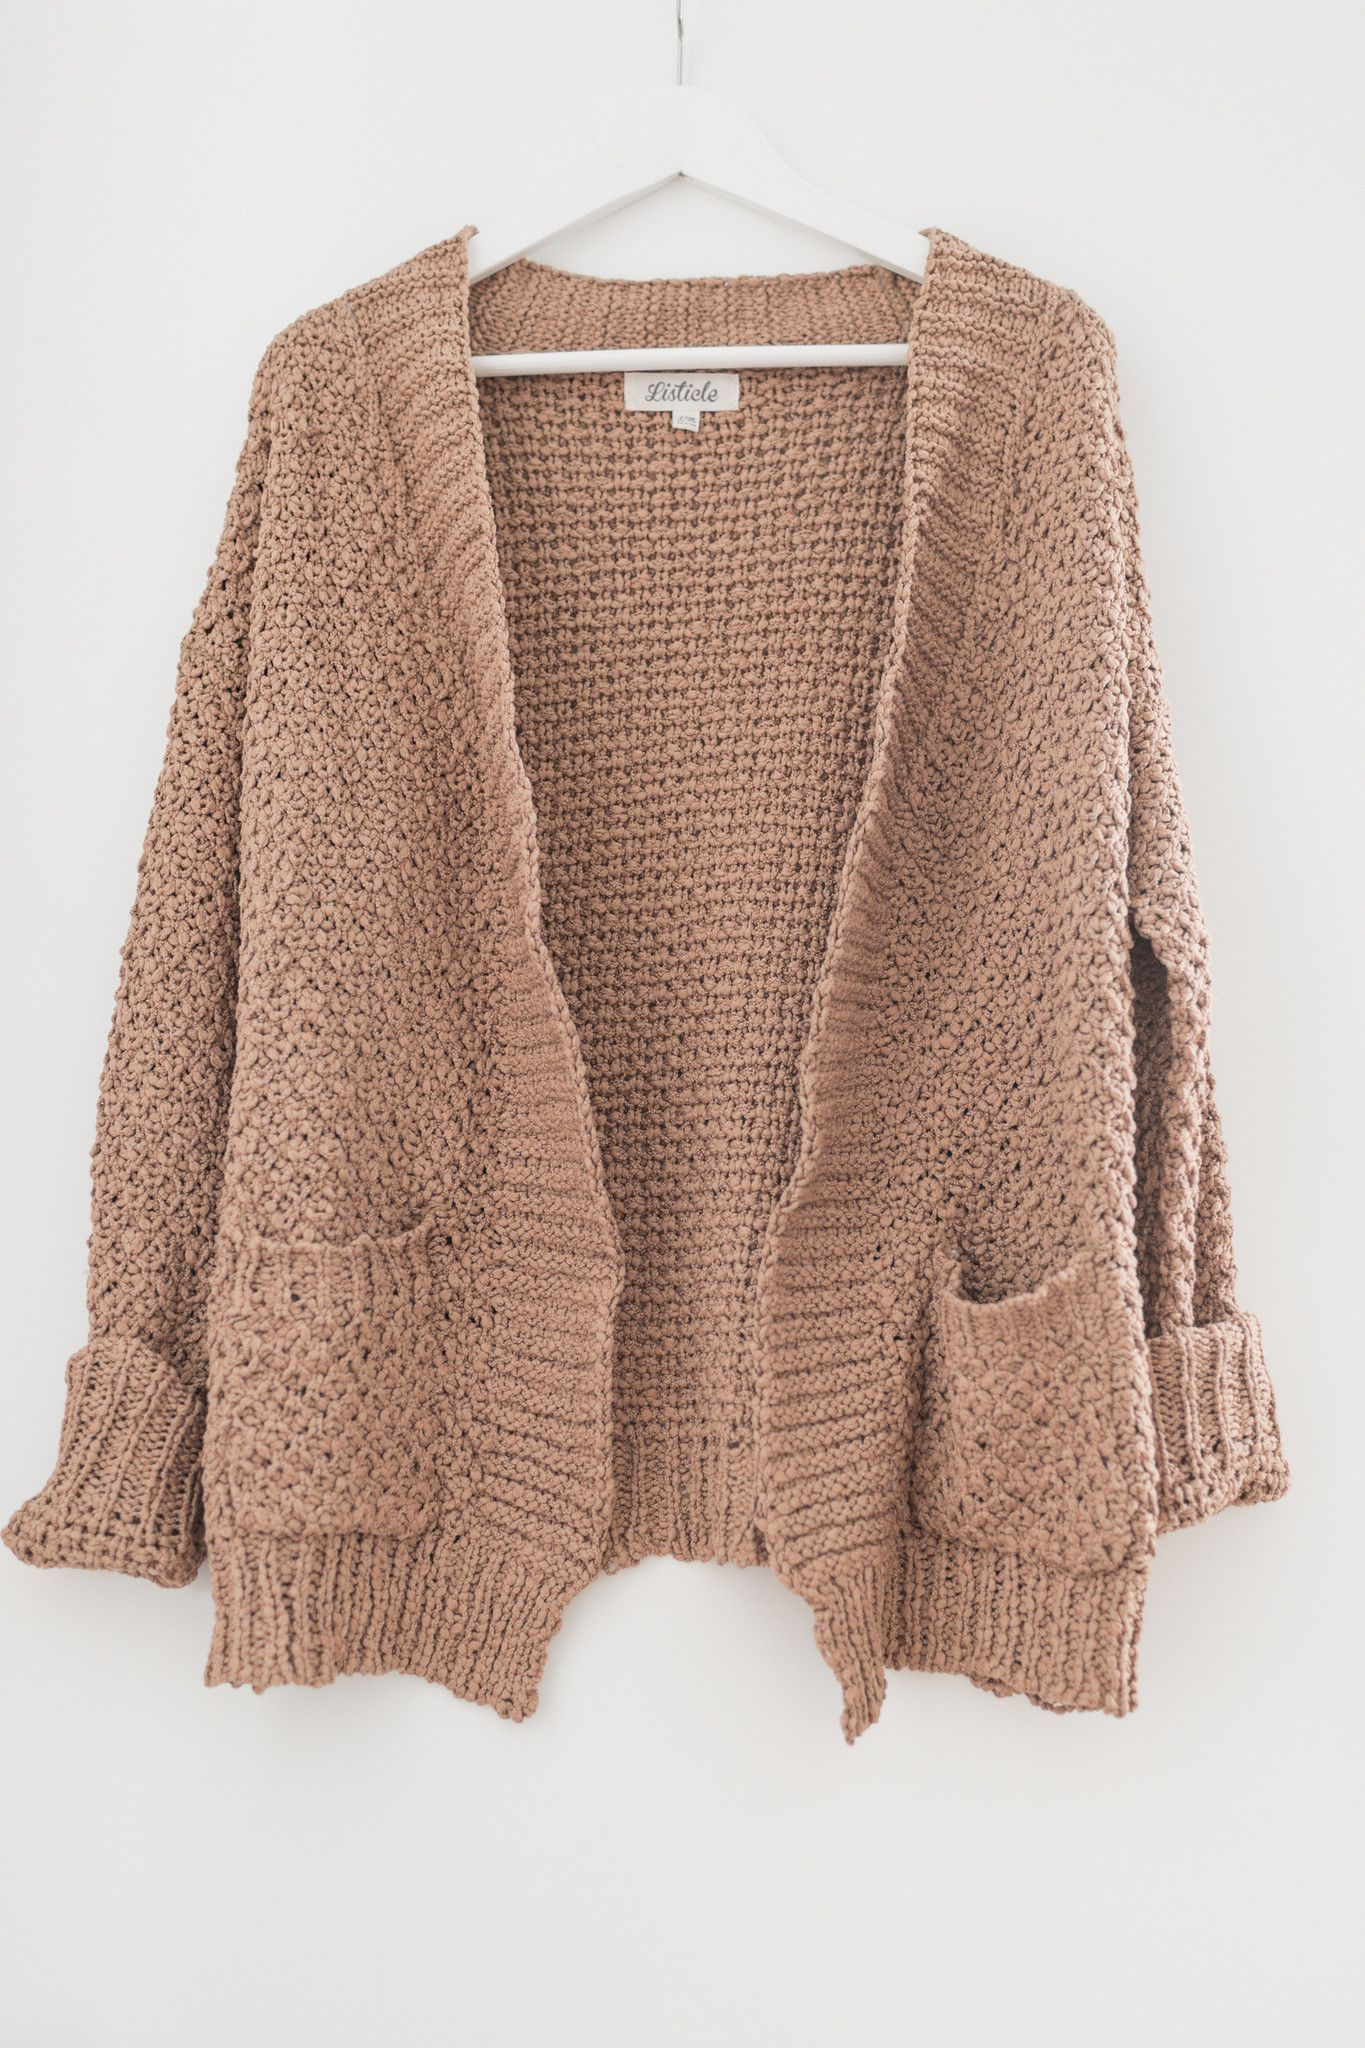 Mocha butterfly crochet knitted cardigan - Super soft chunky knit ...